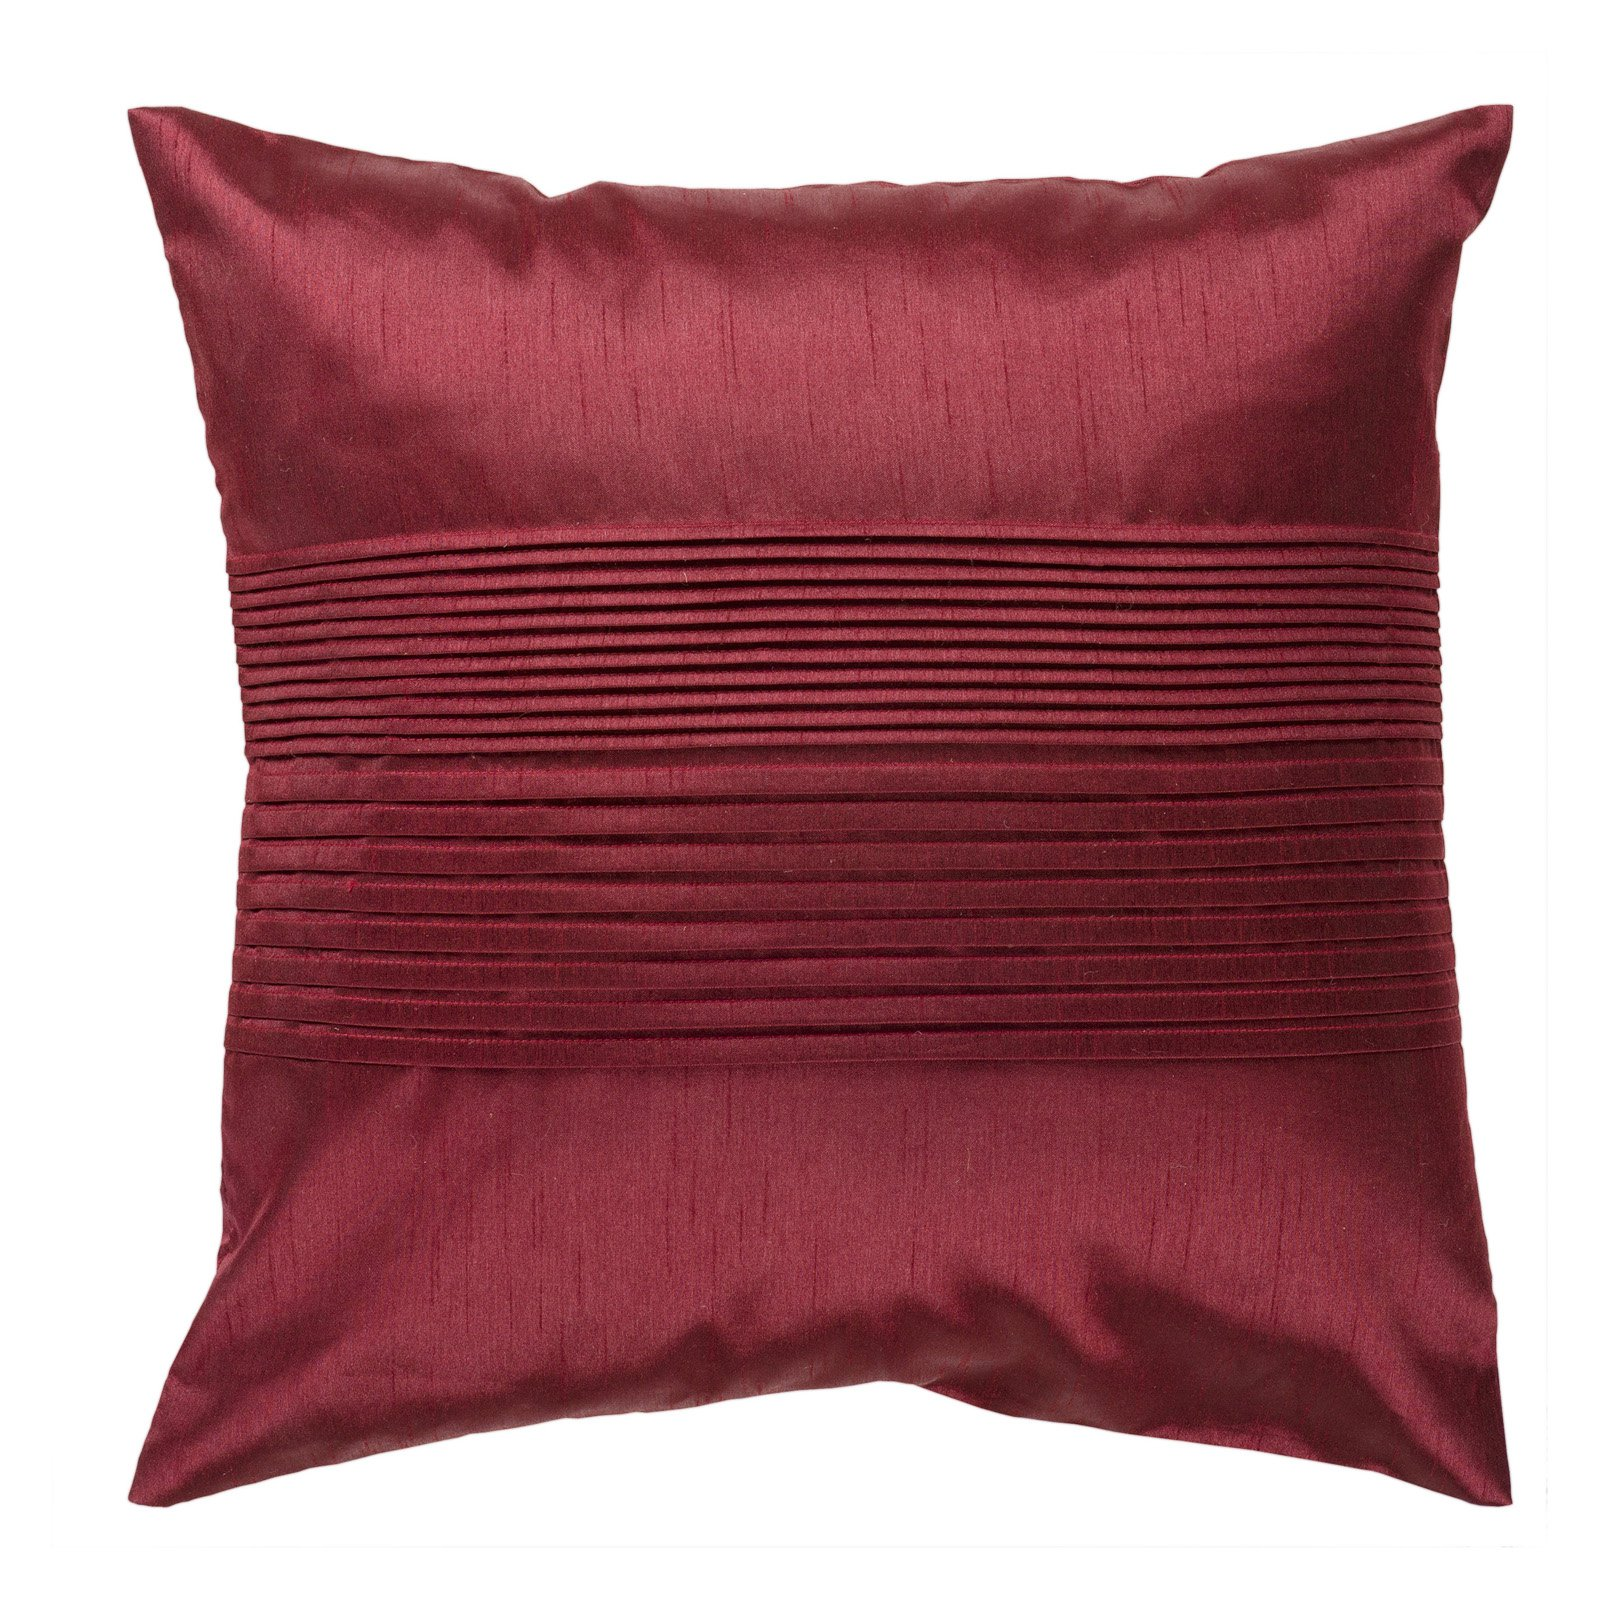 Surya Bustle Decorative Pillow - Maroon